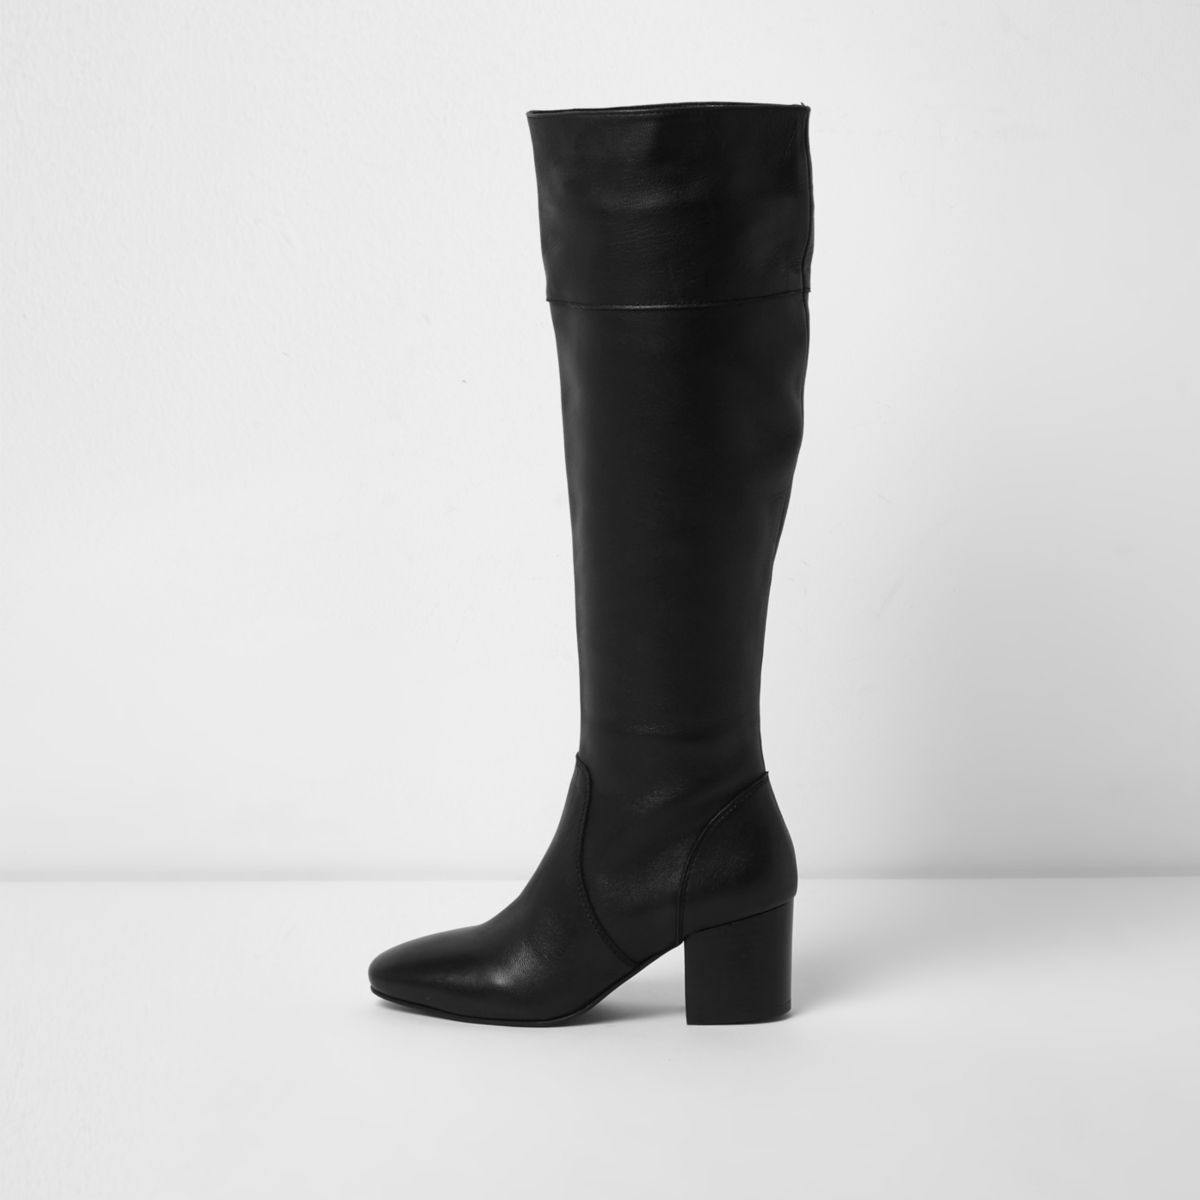 black knee high leather block heel boots boots shoes